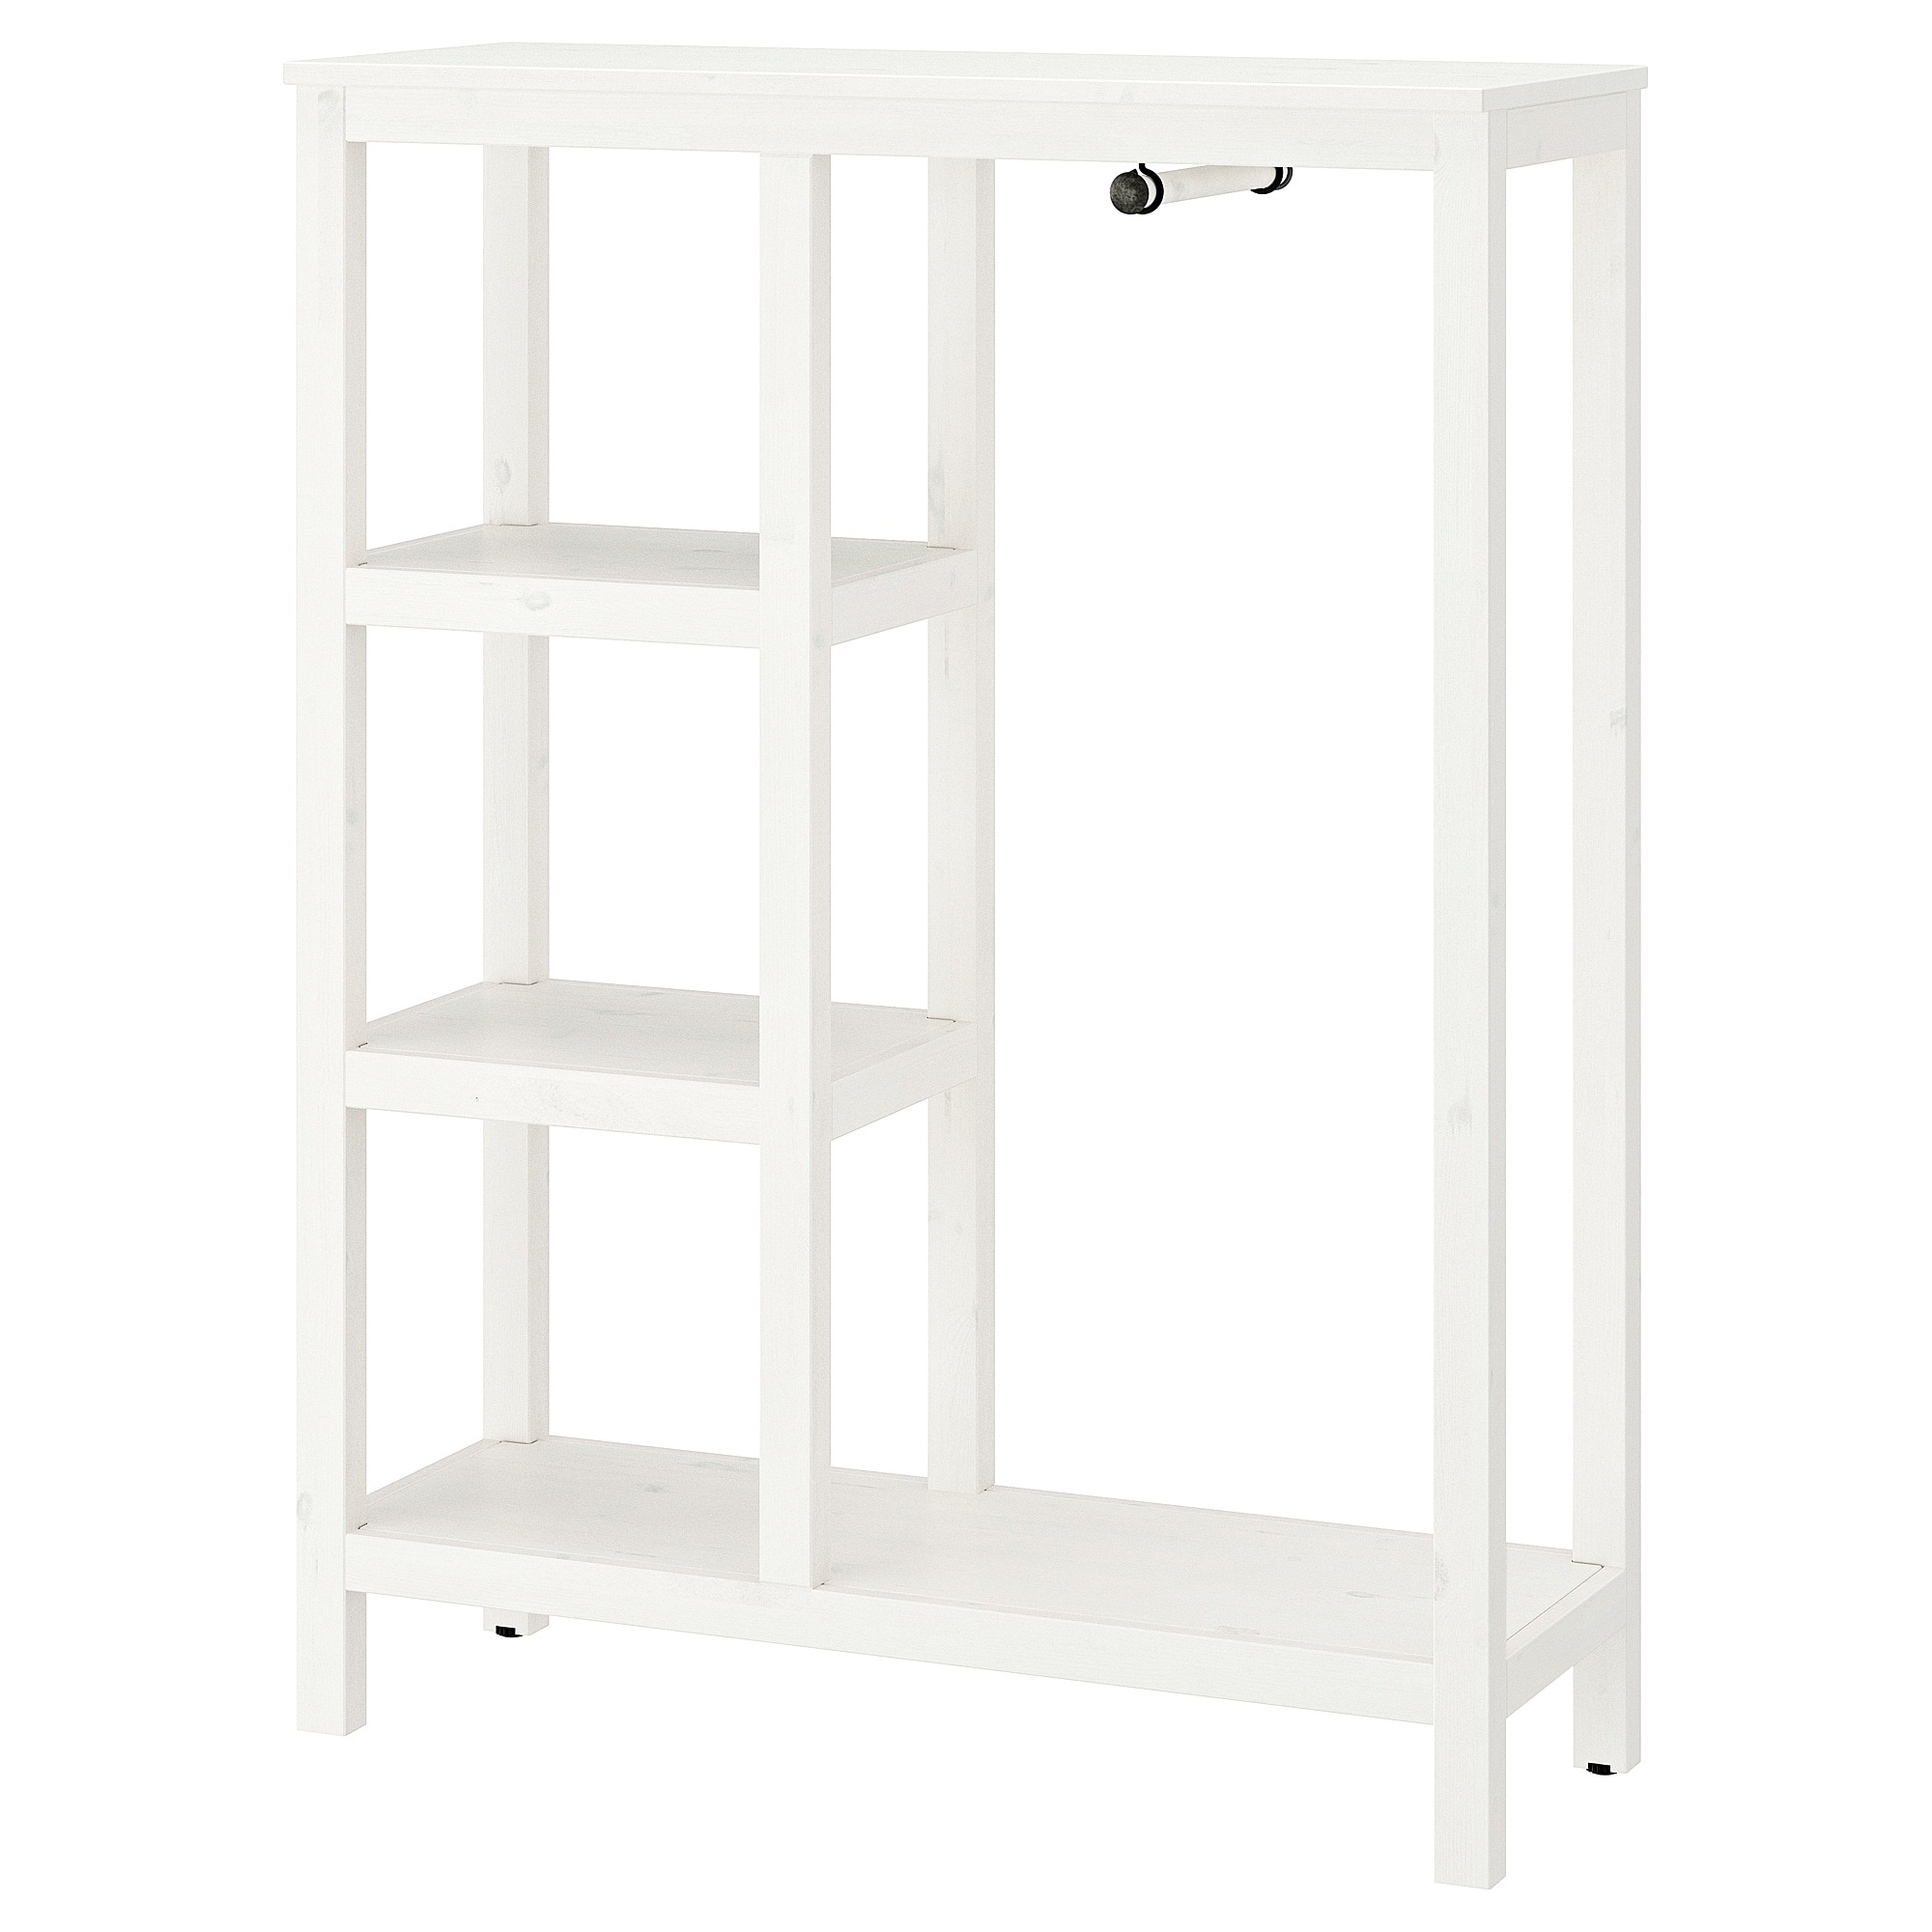 Guardaroba Hemnes Ikea.Open Wardrobe Hemnes White Stained